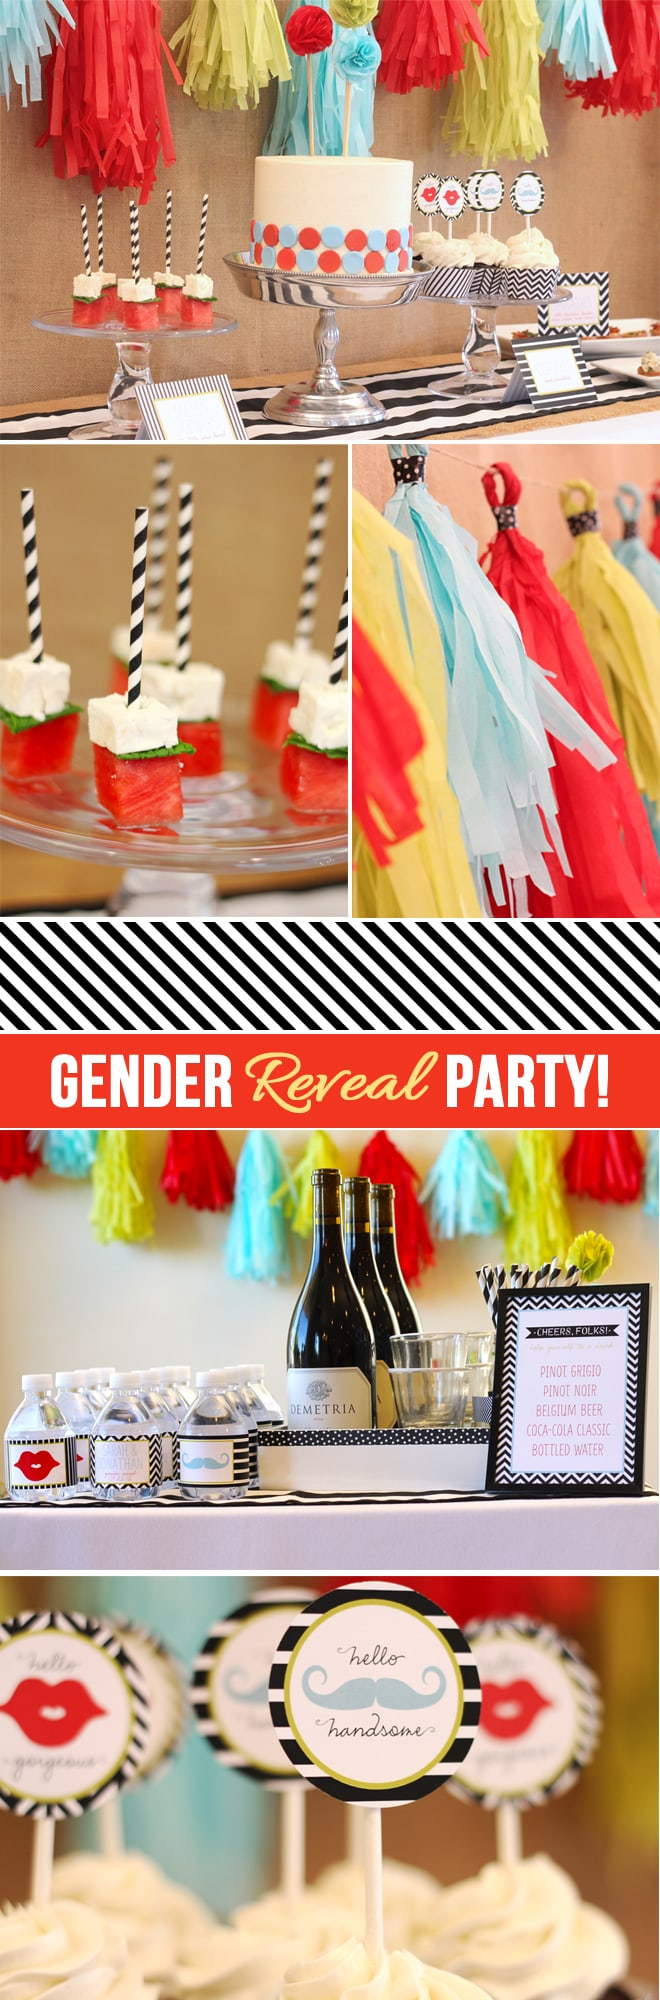 Gender Reveal Party Ideas on Pizzazzerie